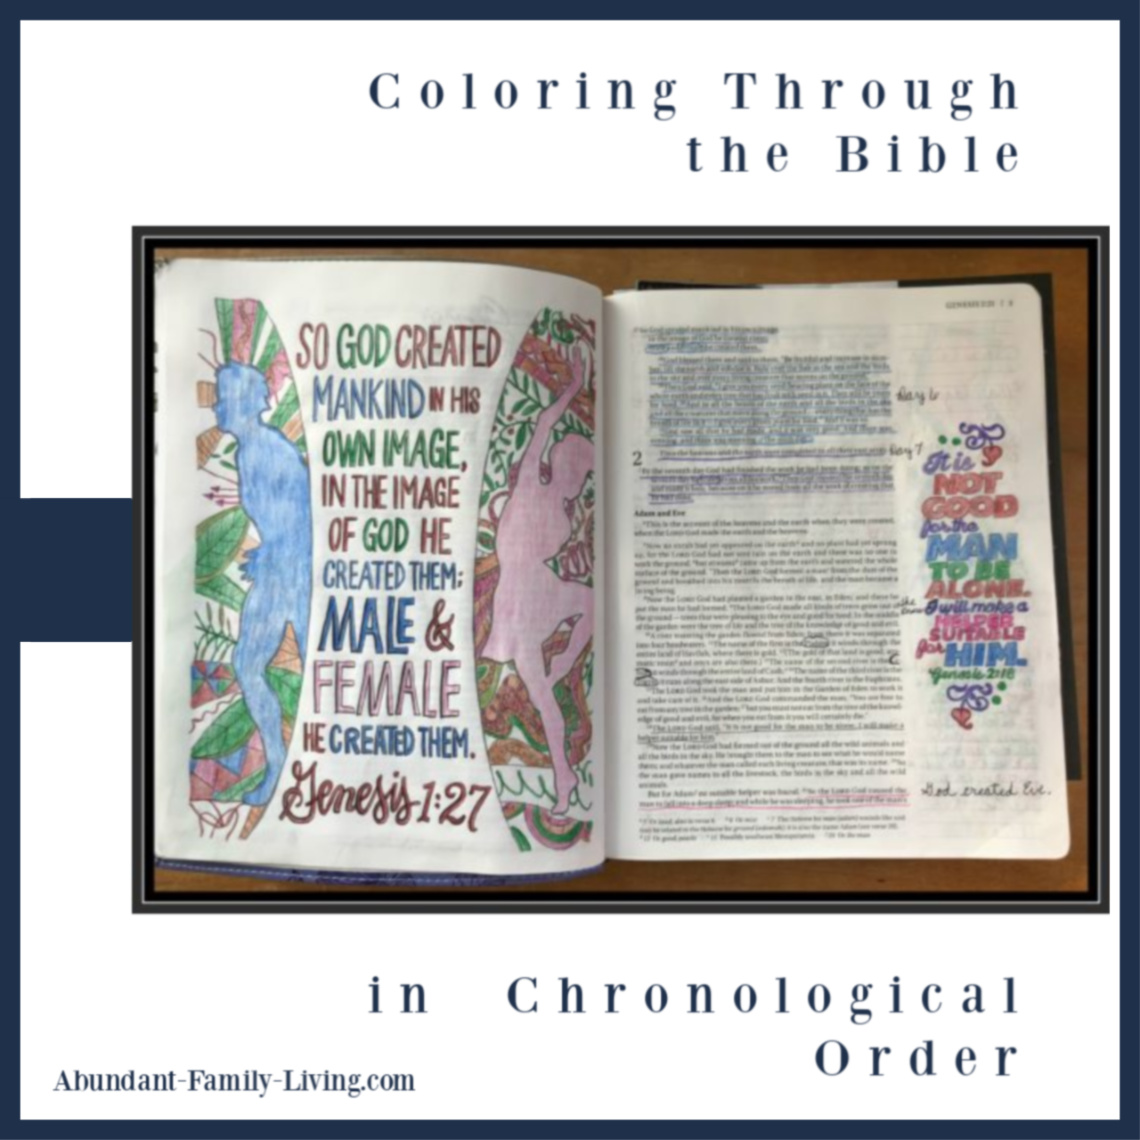 Coloring Through the Bible in Chronological Order